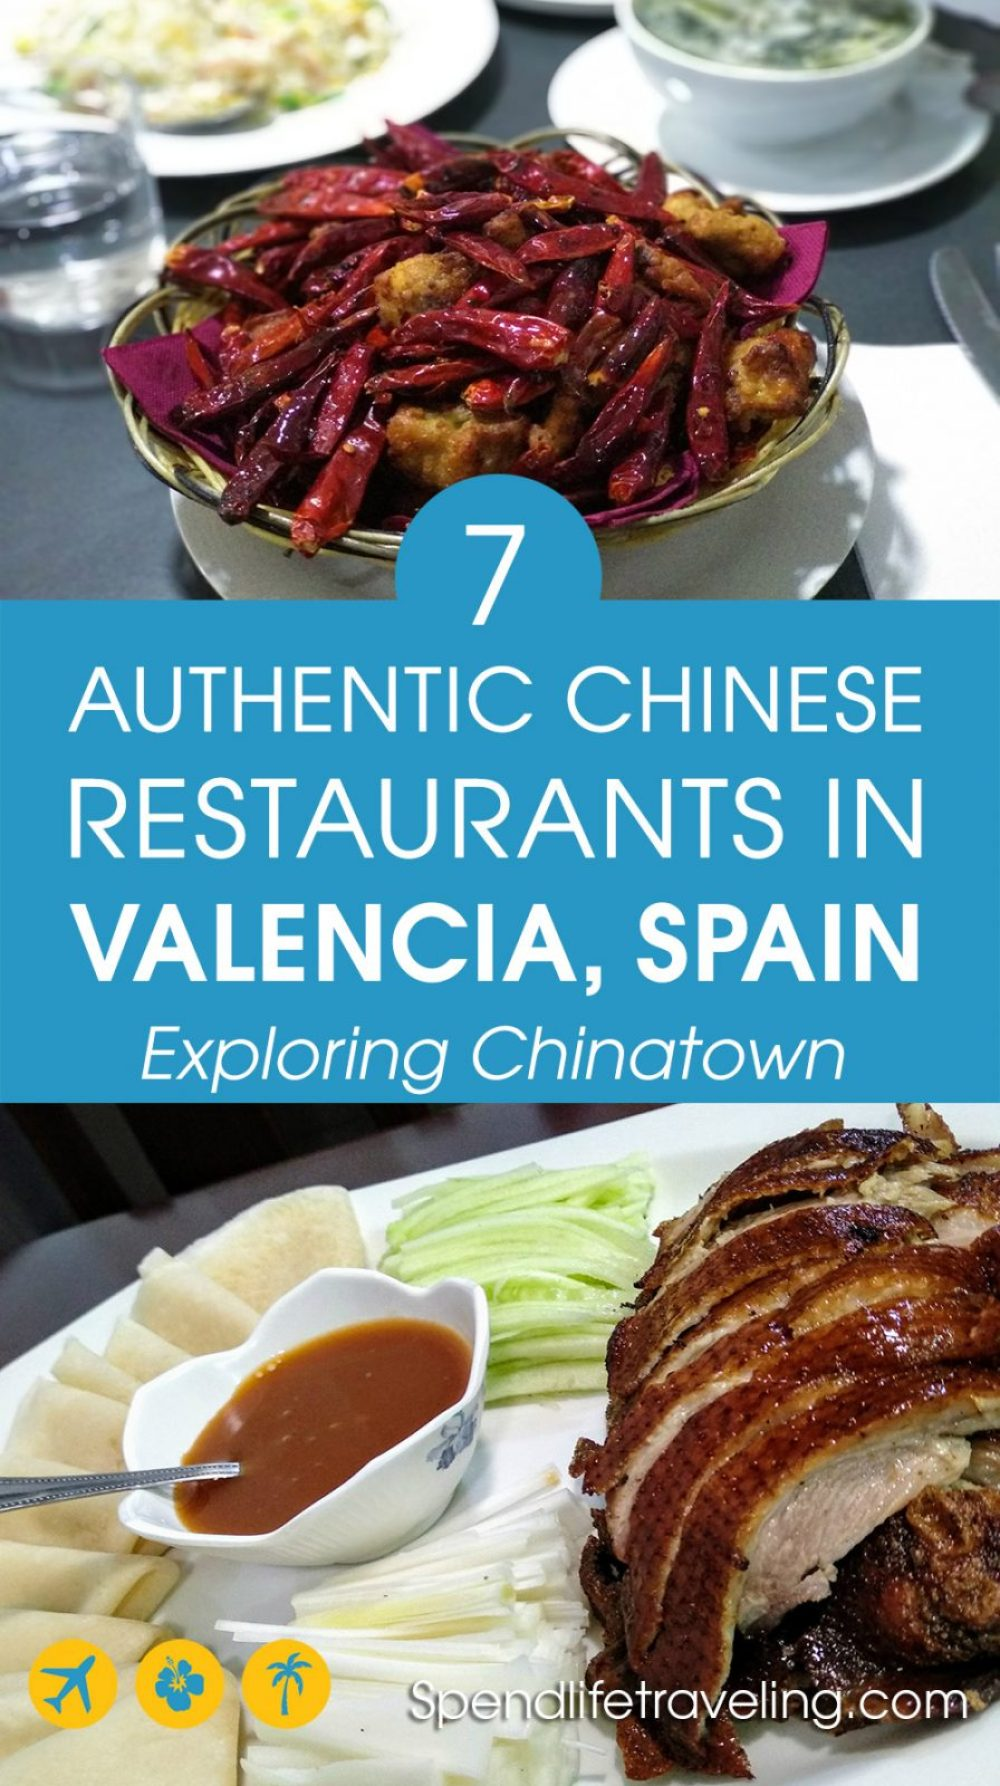 Chinese food might not be the first thing that comes to mind when thinking about what to eat in Valencia, but this city actually has a sizeable Chinese community and a Chinese neighborhood worth exploring. Check out these 7 authentic Chinese restaurants. #Valencia #visitSpain #travelSpain #citybreak